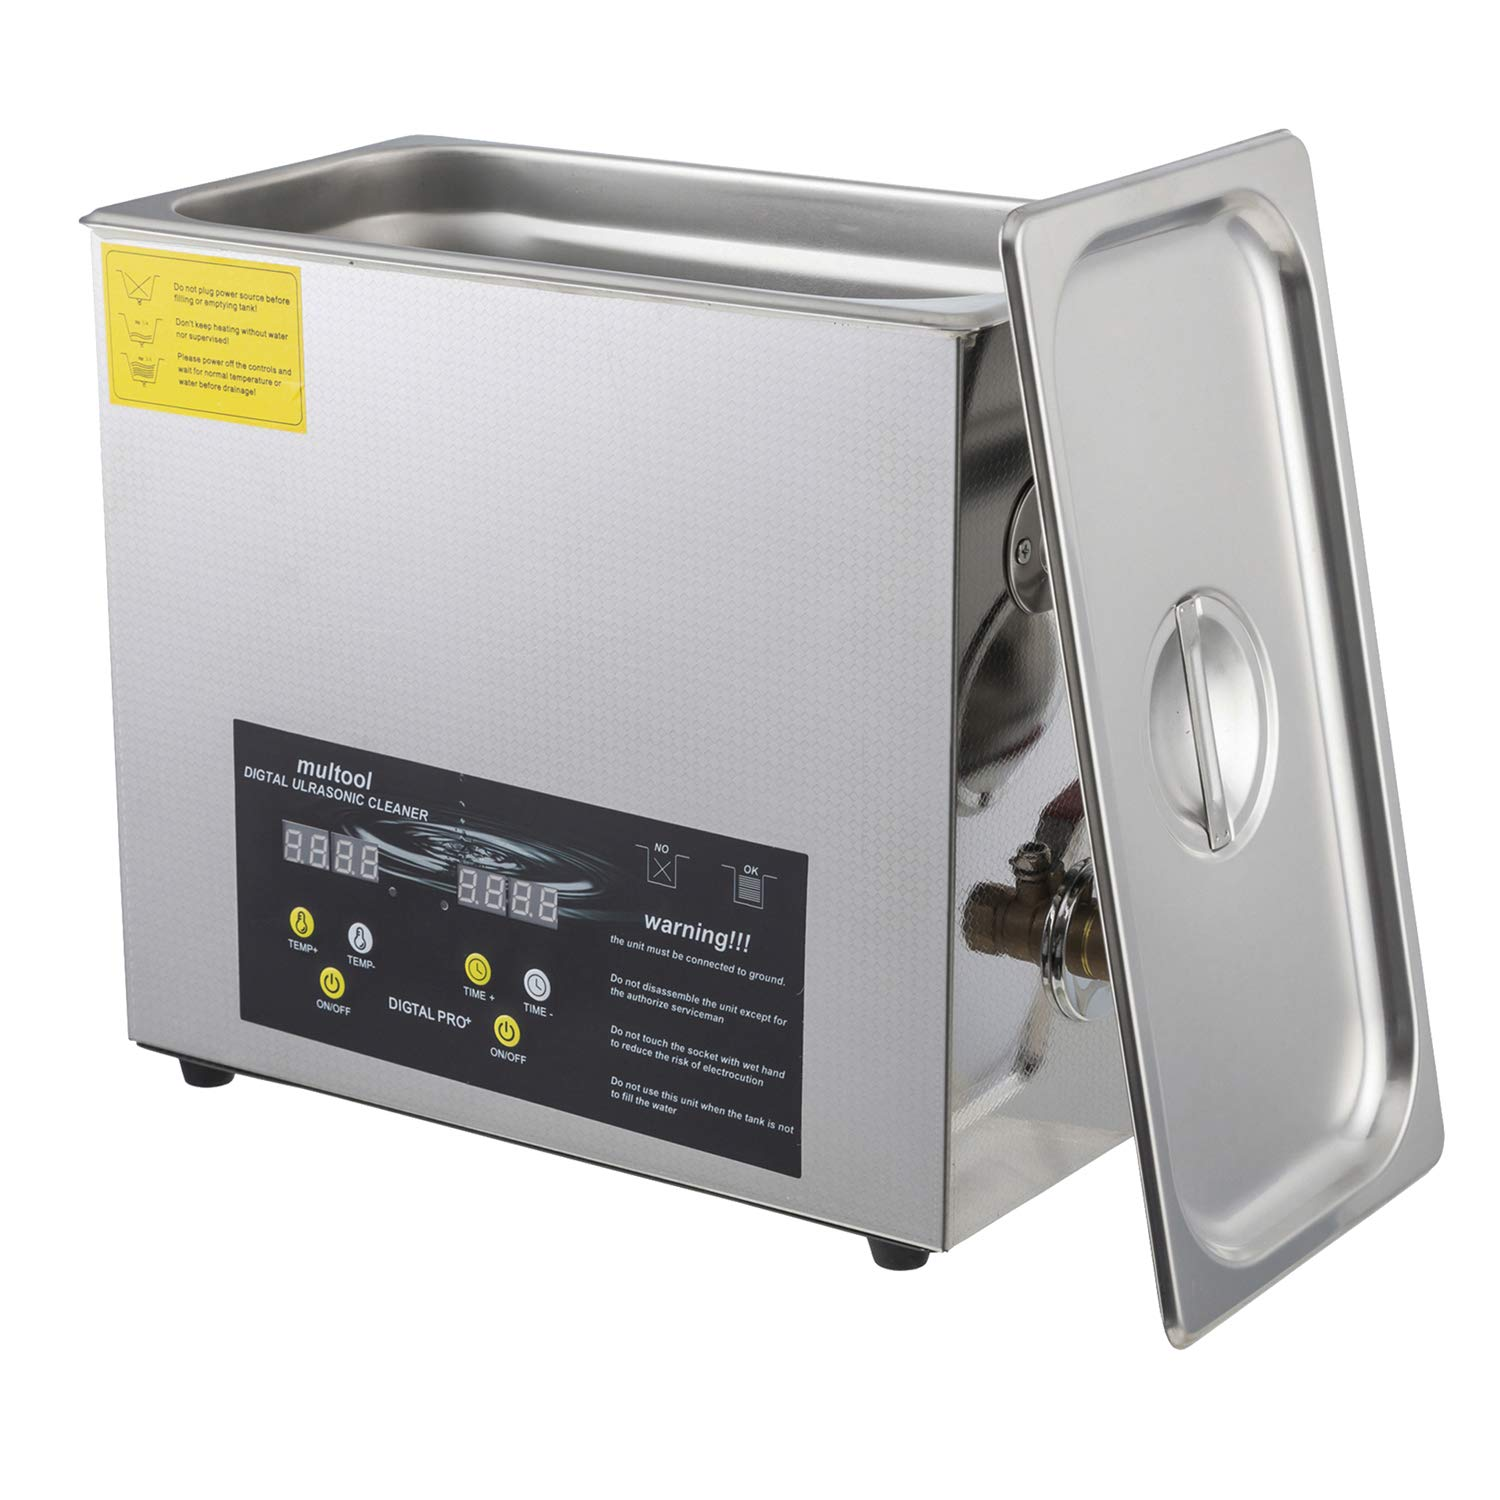 Ultrasonic Cleaner 6L with Digital Timer and Heater Ideal for Cleaning Glasses Watch Bands Carbs Silverware